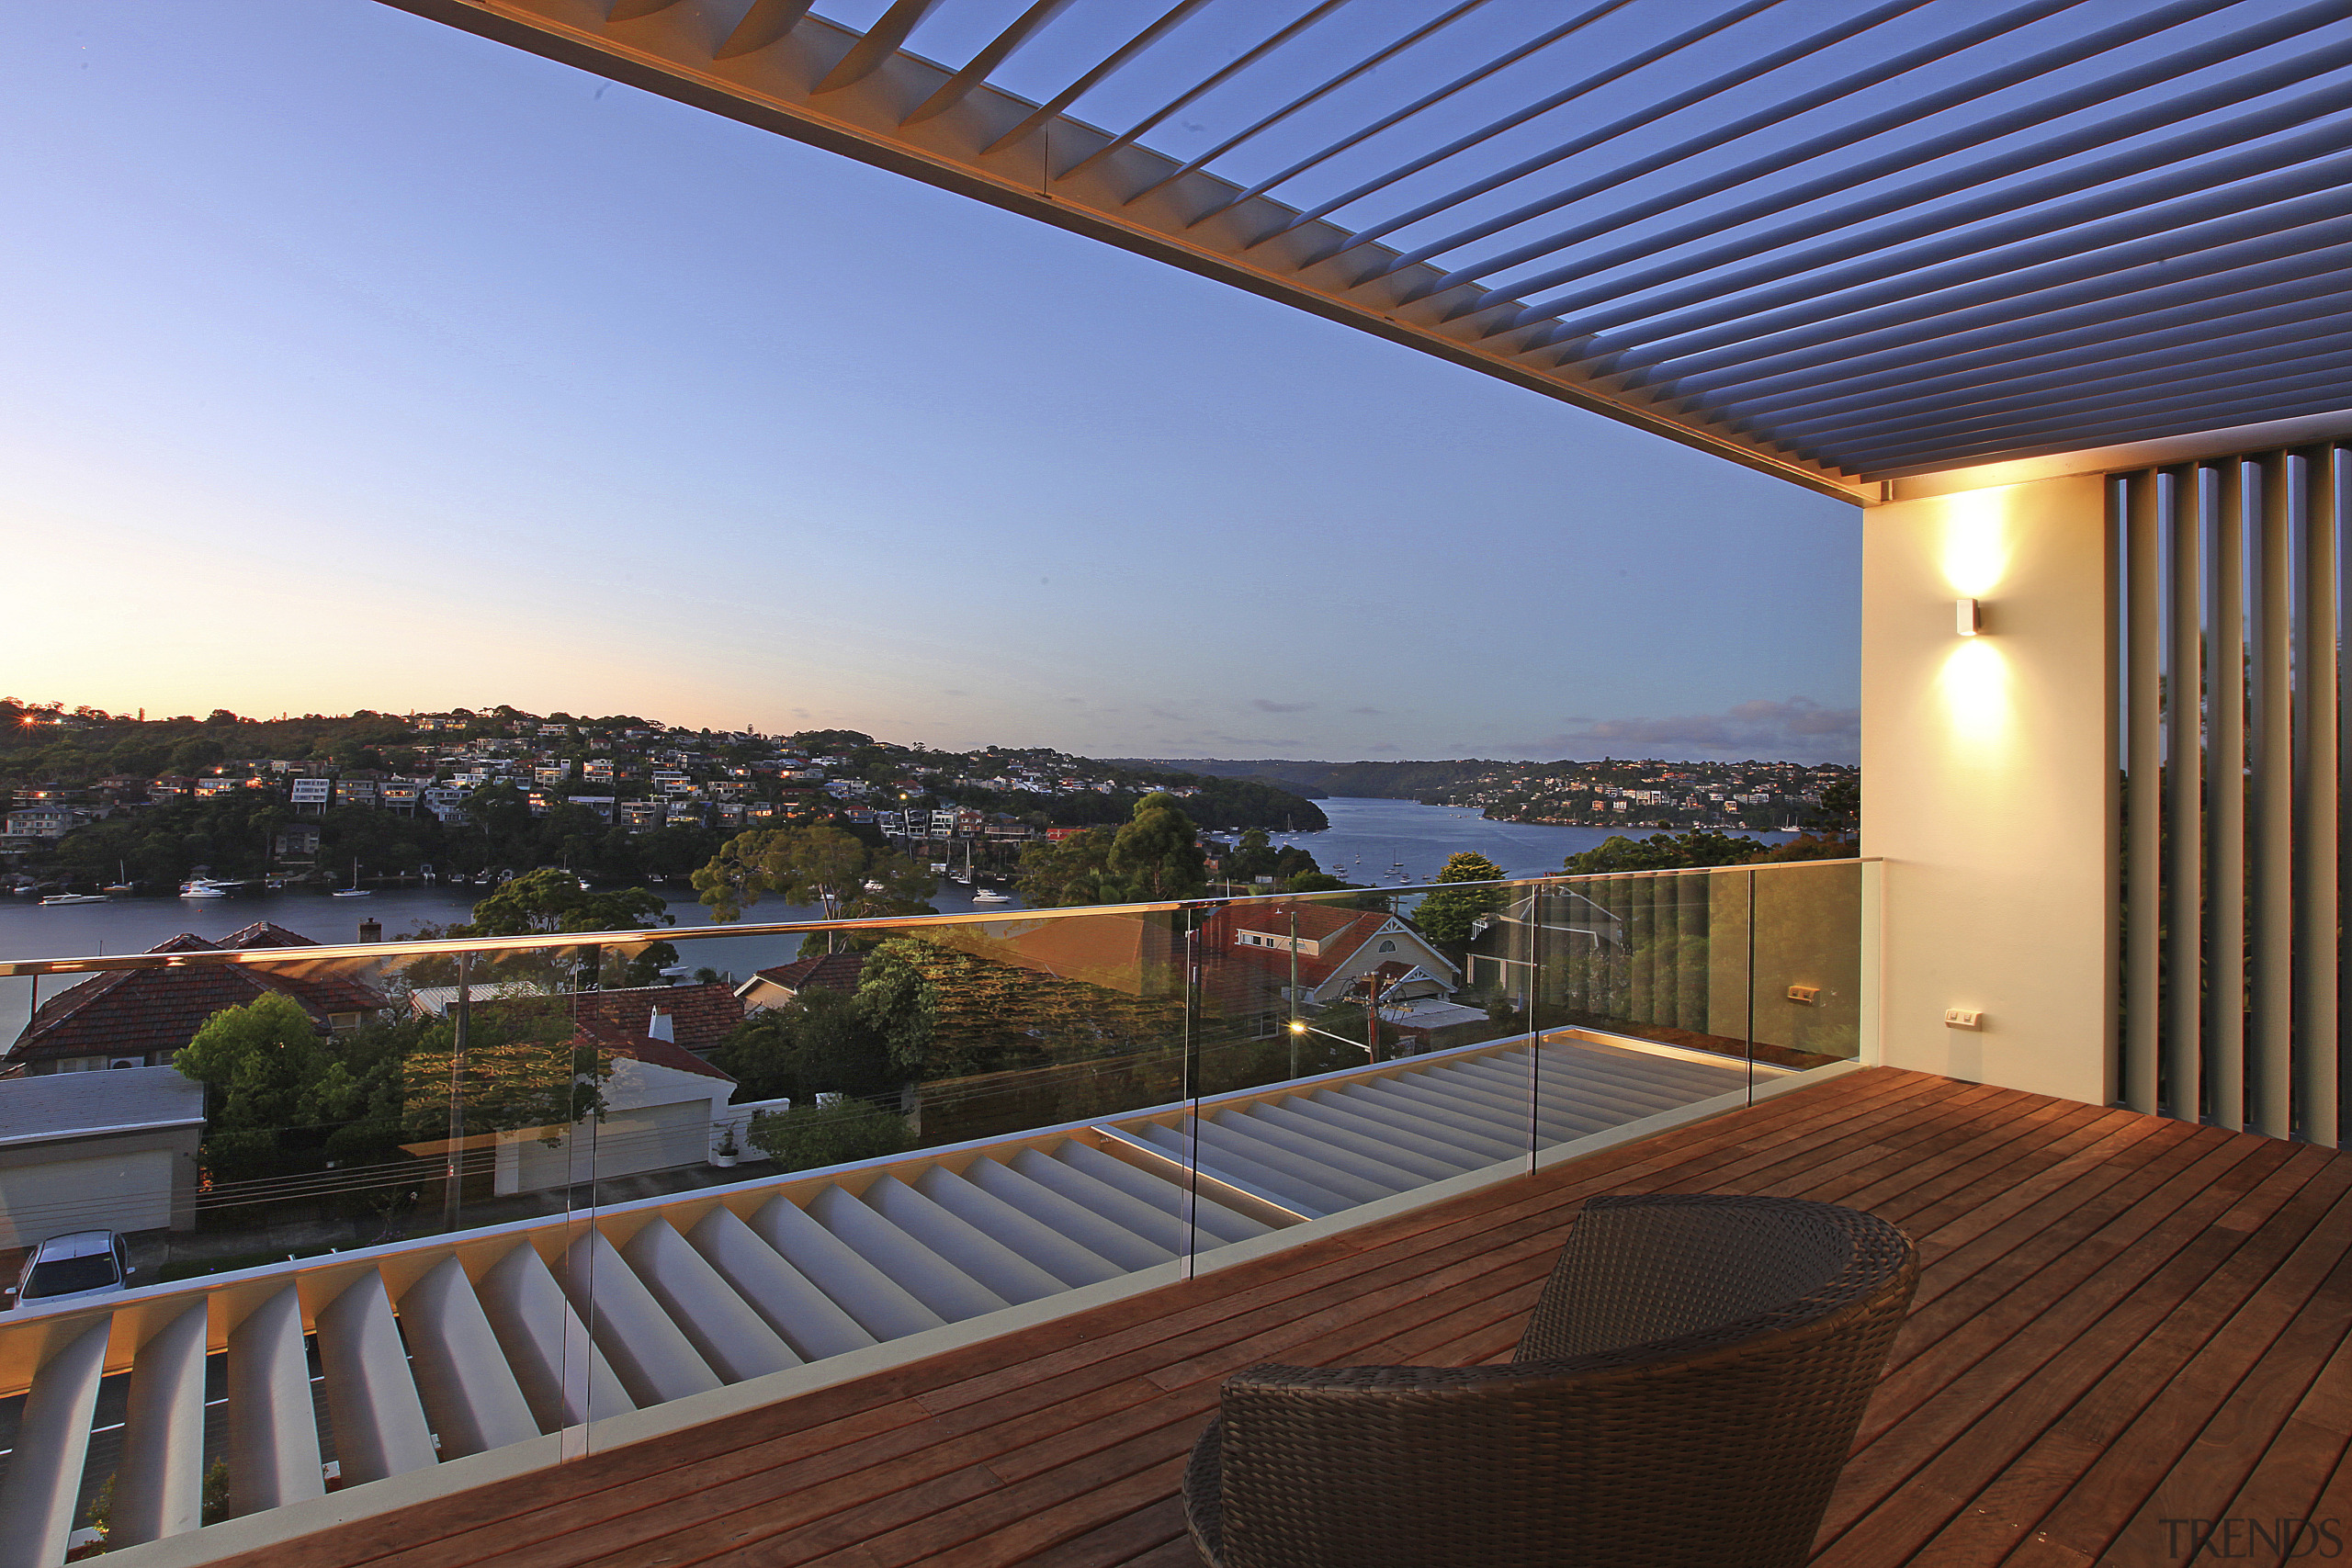 View from balcony. - View from balcony. - apartment, architecture, balcony, condominium, daylighting, deck, estate, home, house, outdoor structure, penthouse apartment, property, real estate, roof, sea, sky, villa, teal